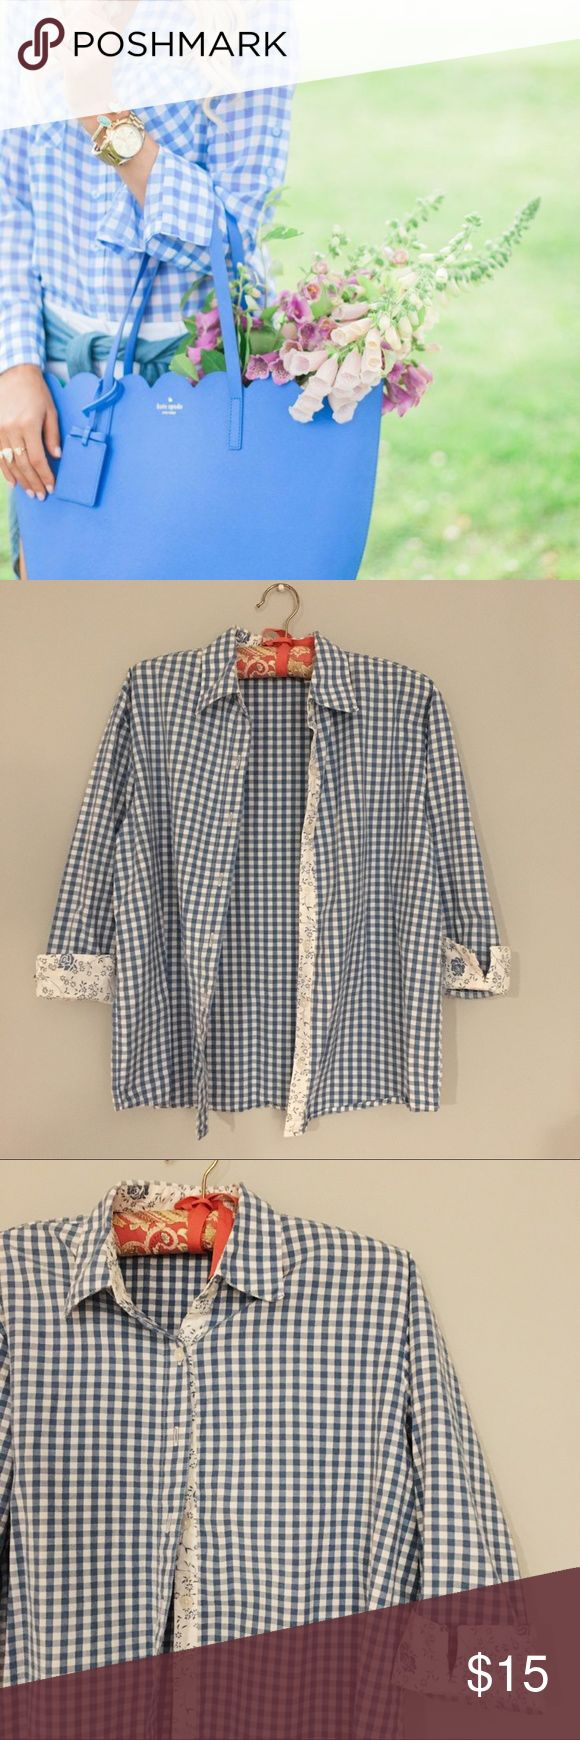 BLUE GINGHAM Light blue gingham shirt with floral trim interior. Great winter layering shirt. By Dress Barn. Image 1 credit to pinterest. Similar style.  No Low balls No Trades No offline transaction . Tops